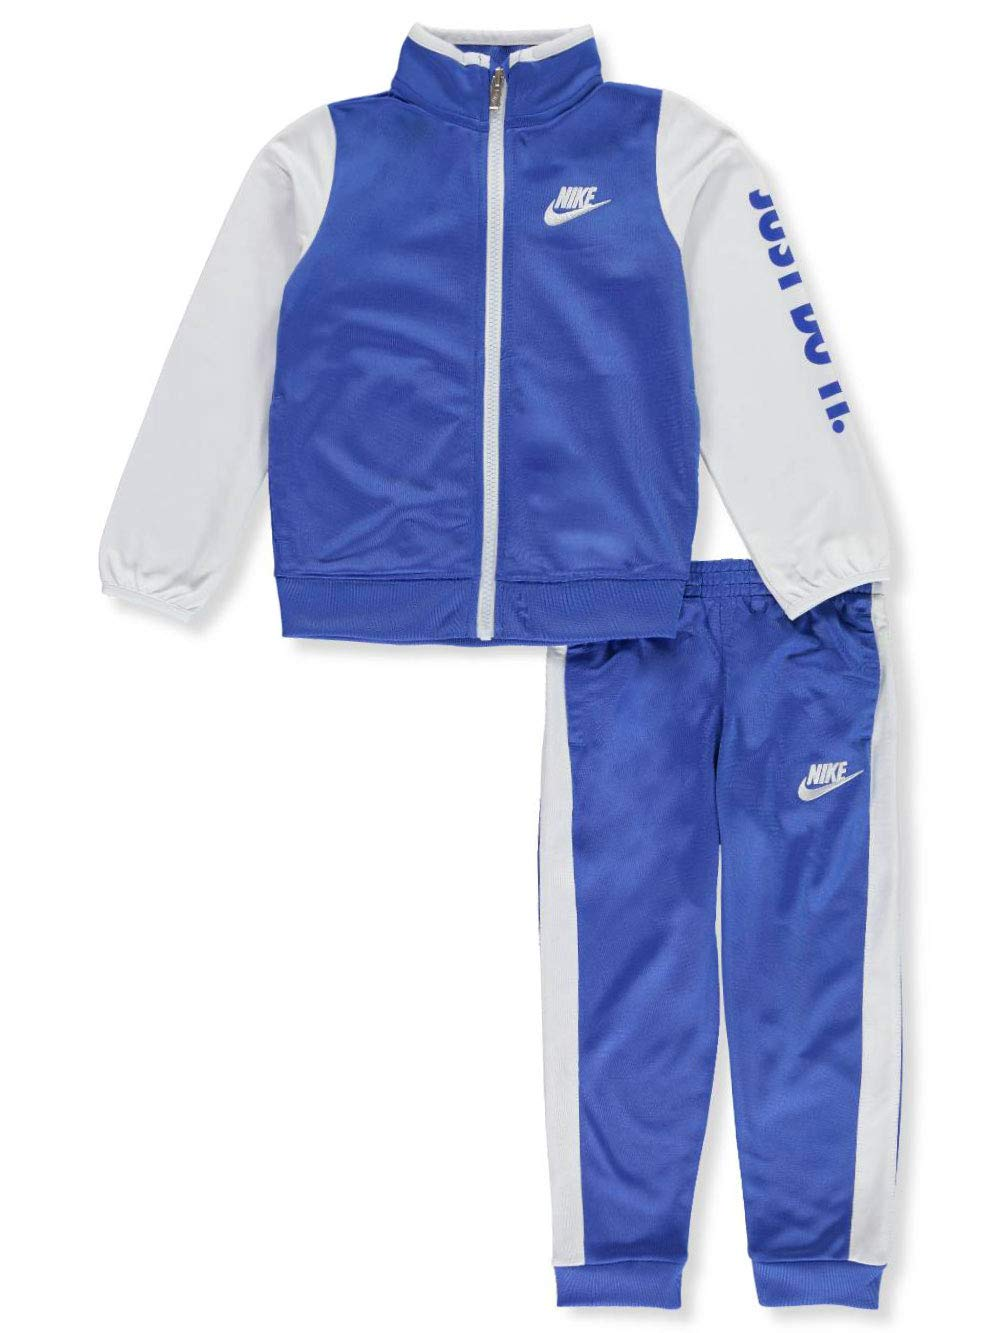 Nike Boys' 2-Piece Tracksuit - Game Royal, 2t